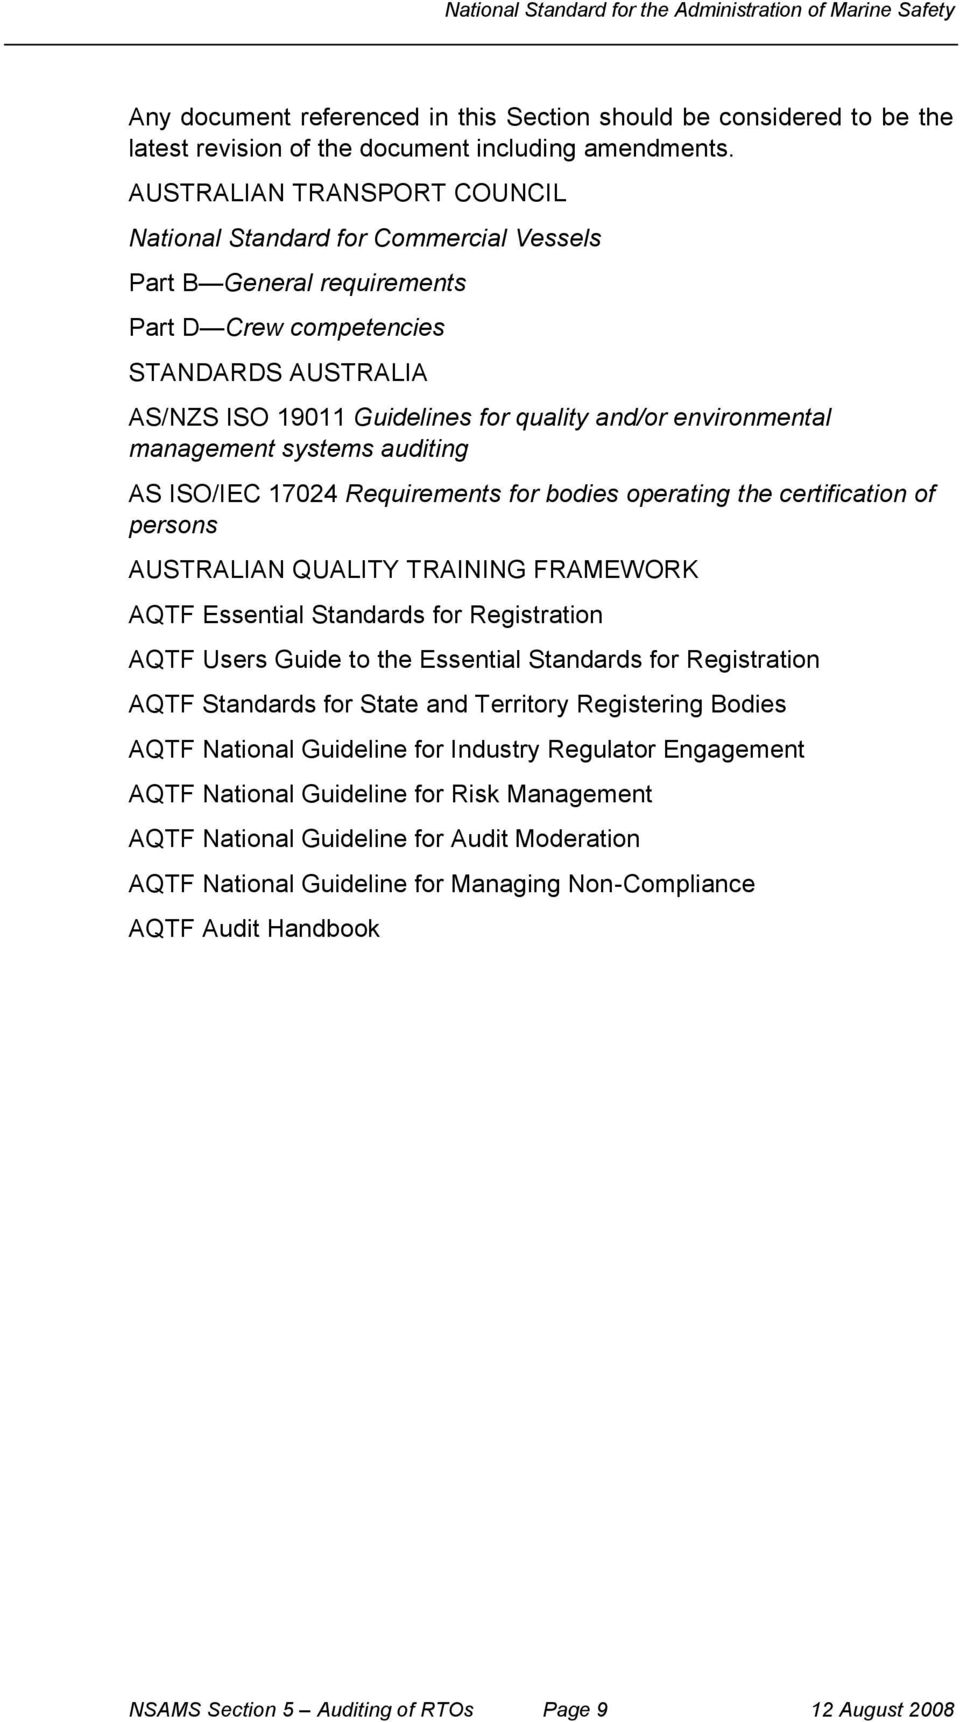 environmental management systems auditing AS ISO/IEC 17024 Requirements for bodies operating the certification of persons AUSTRALIAN QUALITY TRAINING FRAMEWORK AQTF Essential Standards for